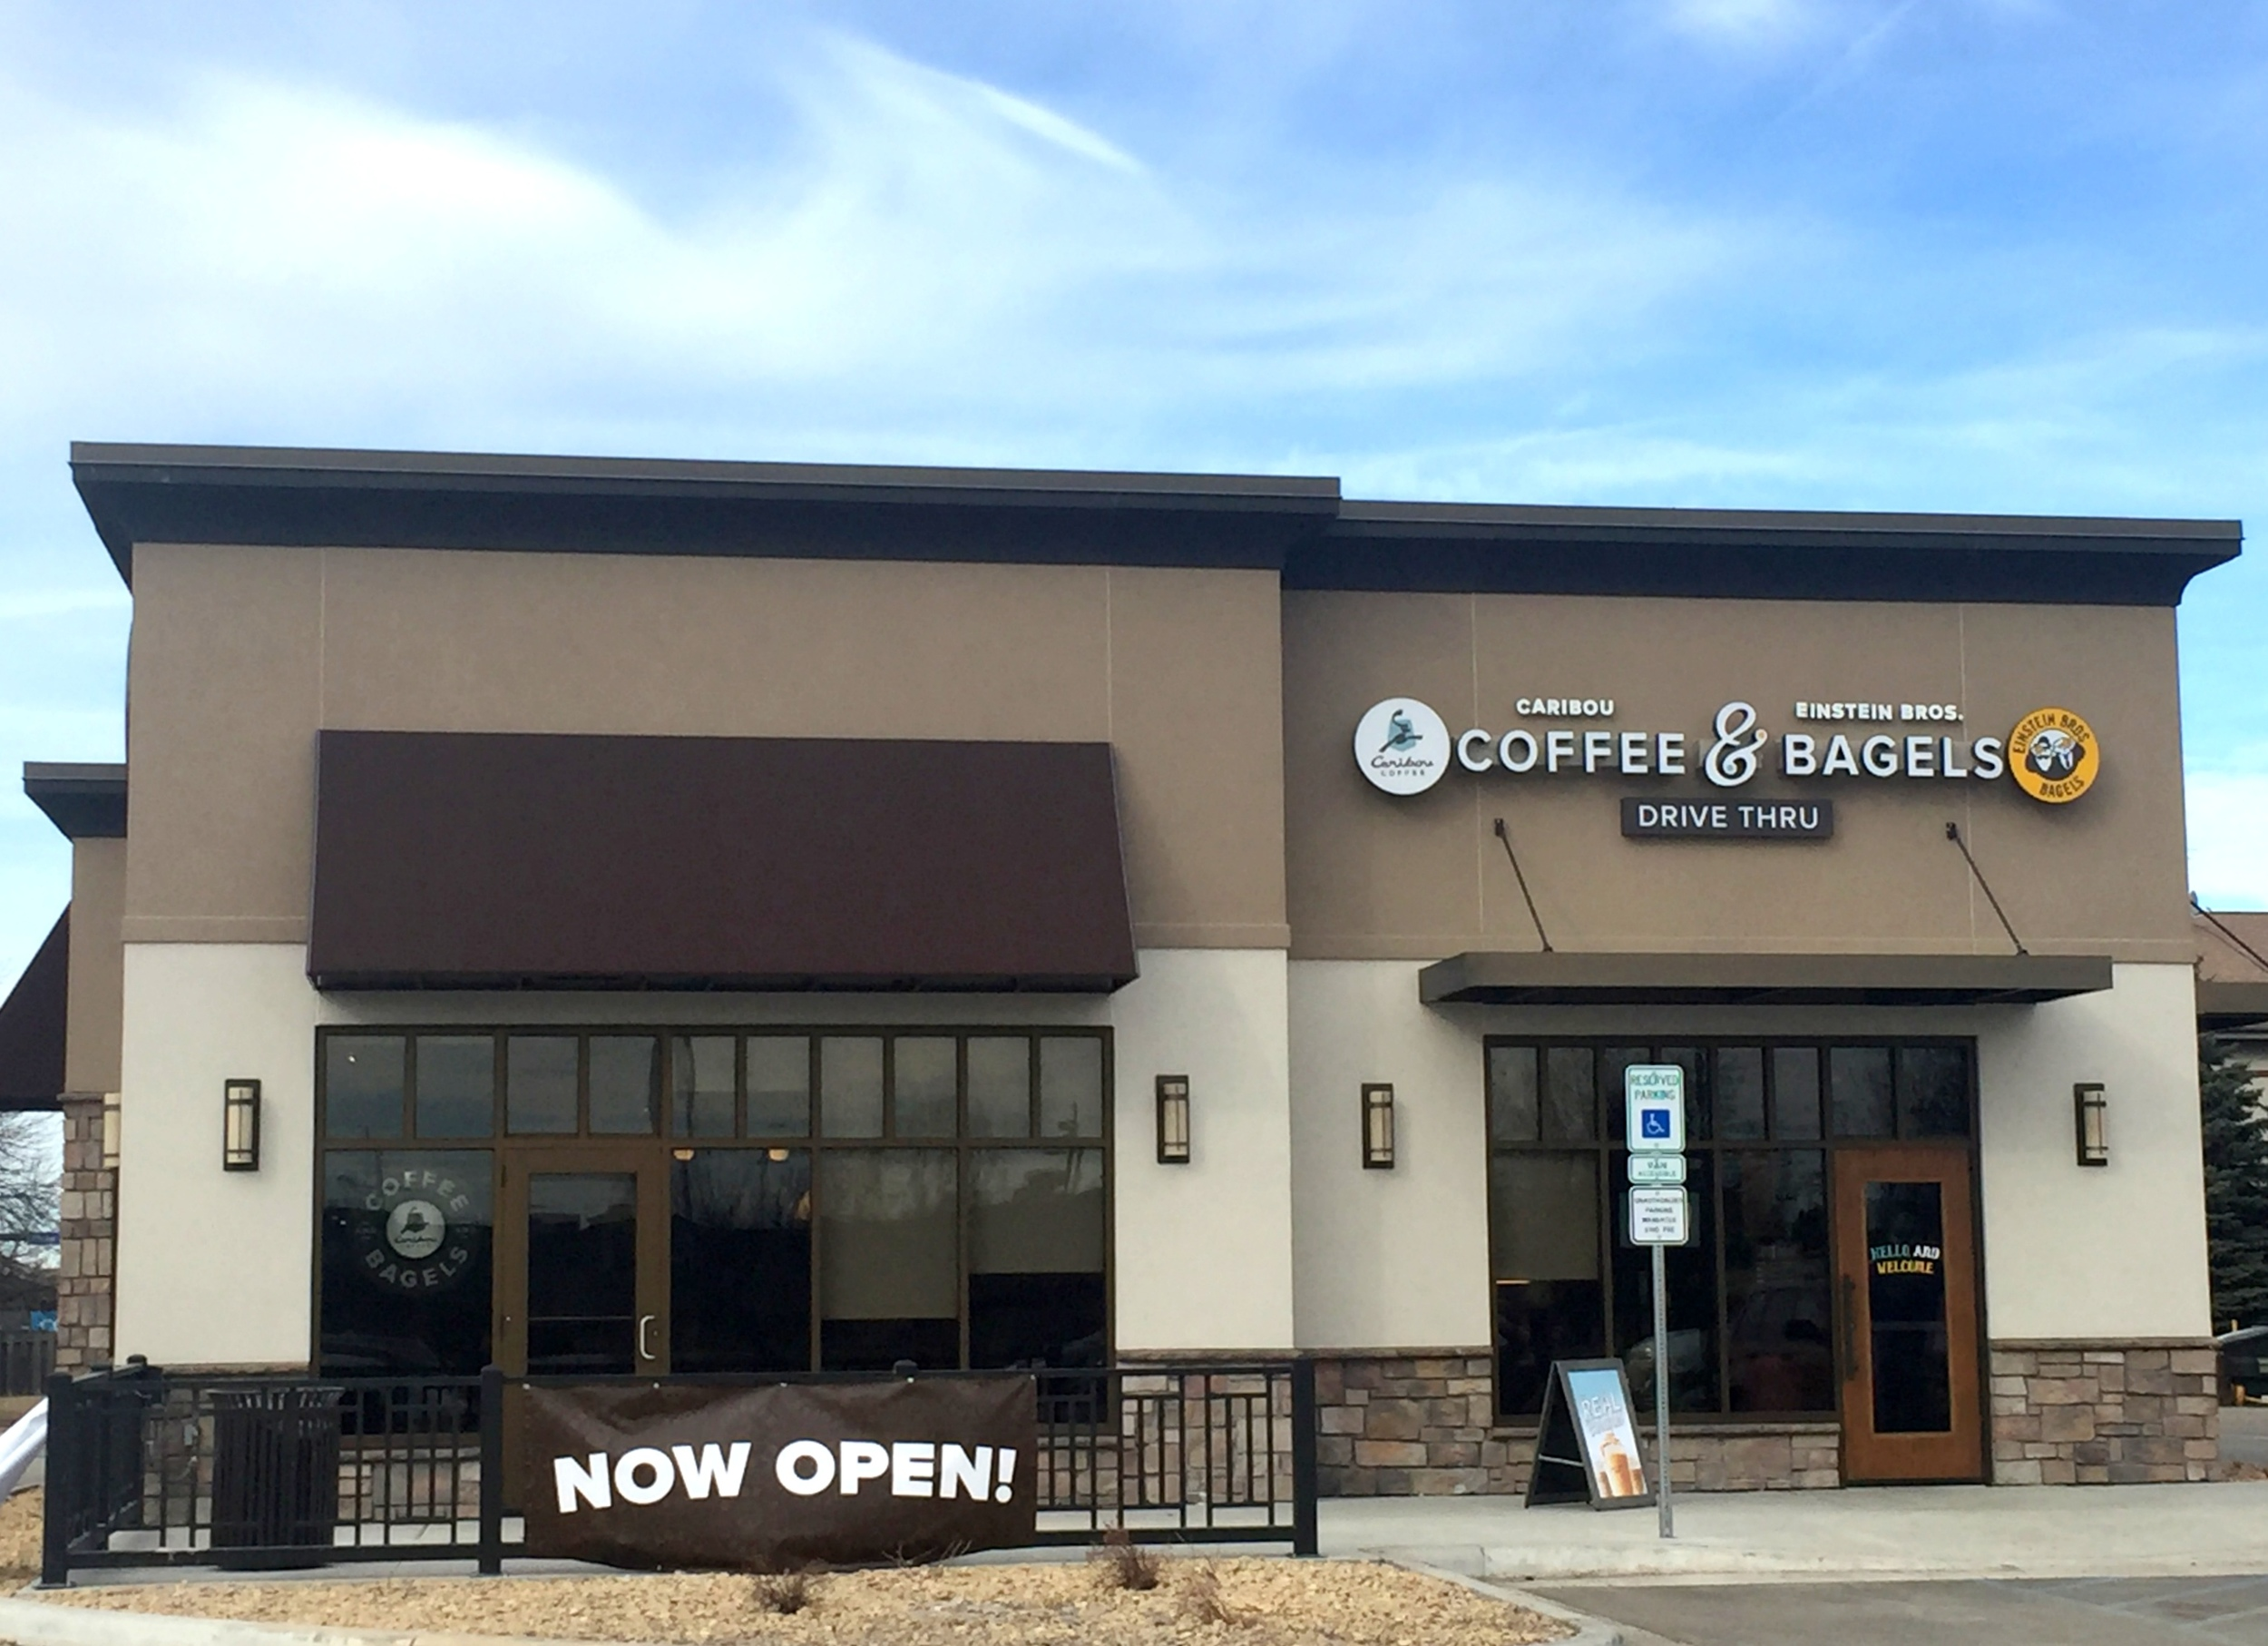 Exterior of a recently opened Caribou Coffee and Einstein Brothers Bagels location in Grand Forks | Grand Forks Herald